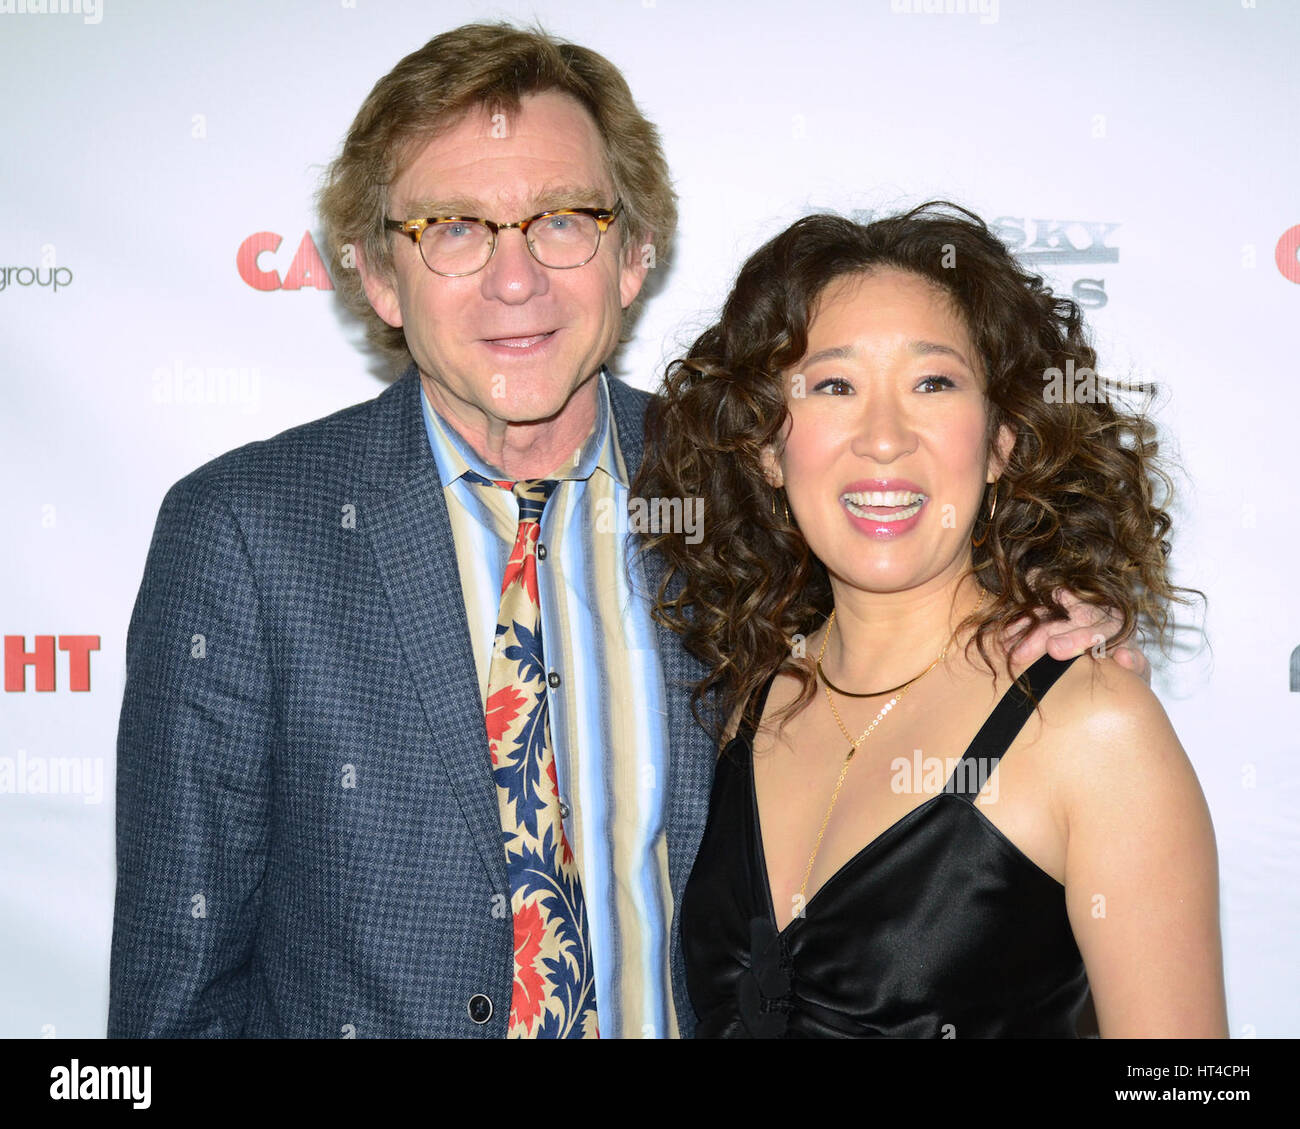 Jim Turner and Sandra Oh attends the premiere of Dark Sky Films' 'Catfight' at Cinefamily on March 2, - Stock Image